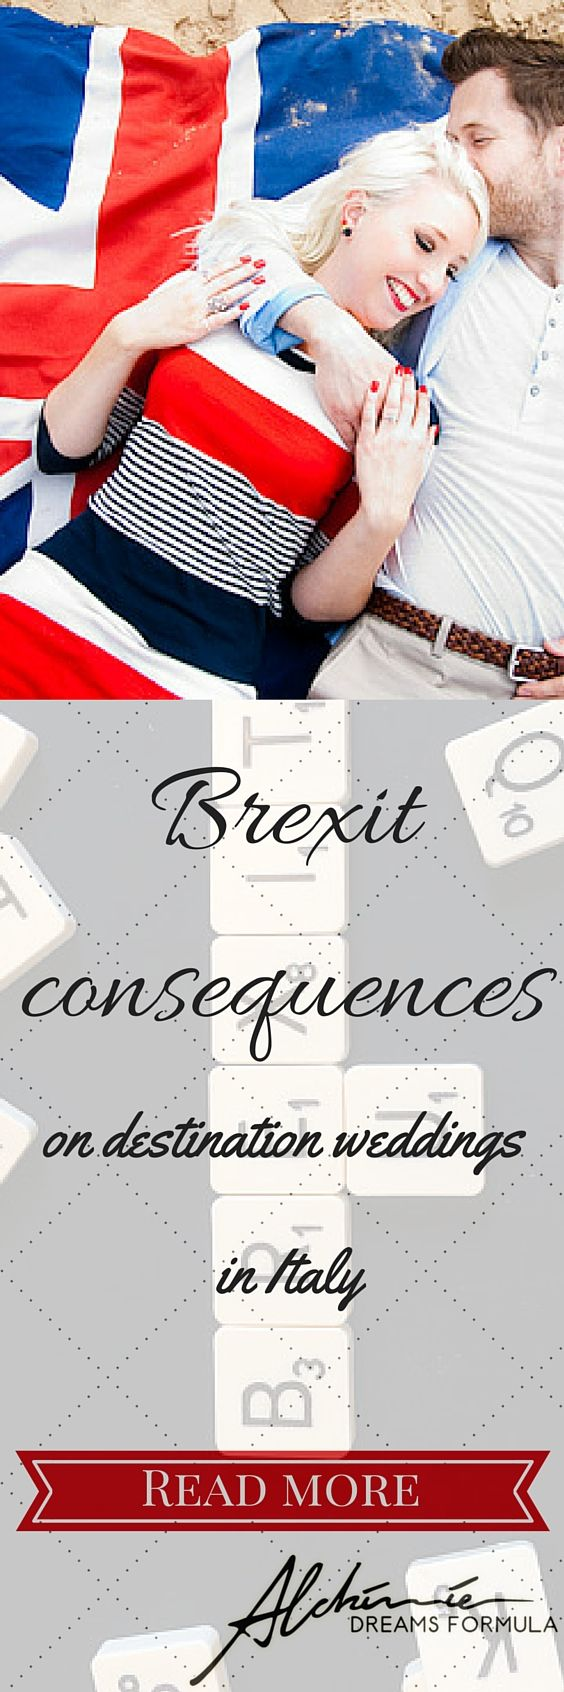 What will be Brexit consequences for destination weddings in Italy? The epochal event of Brexit